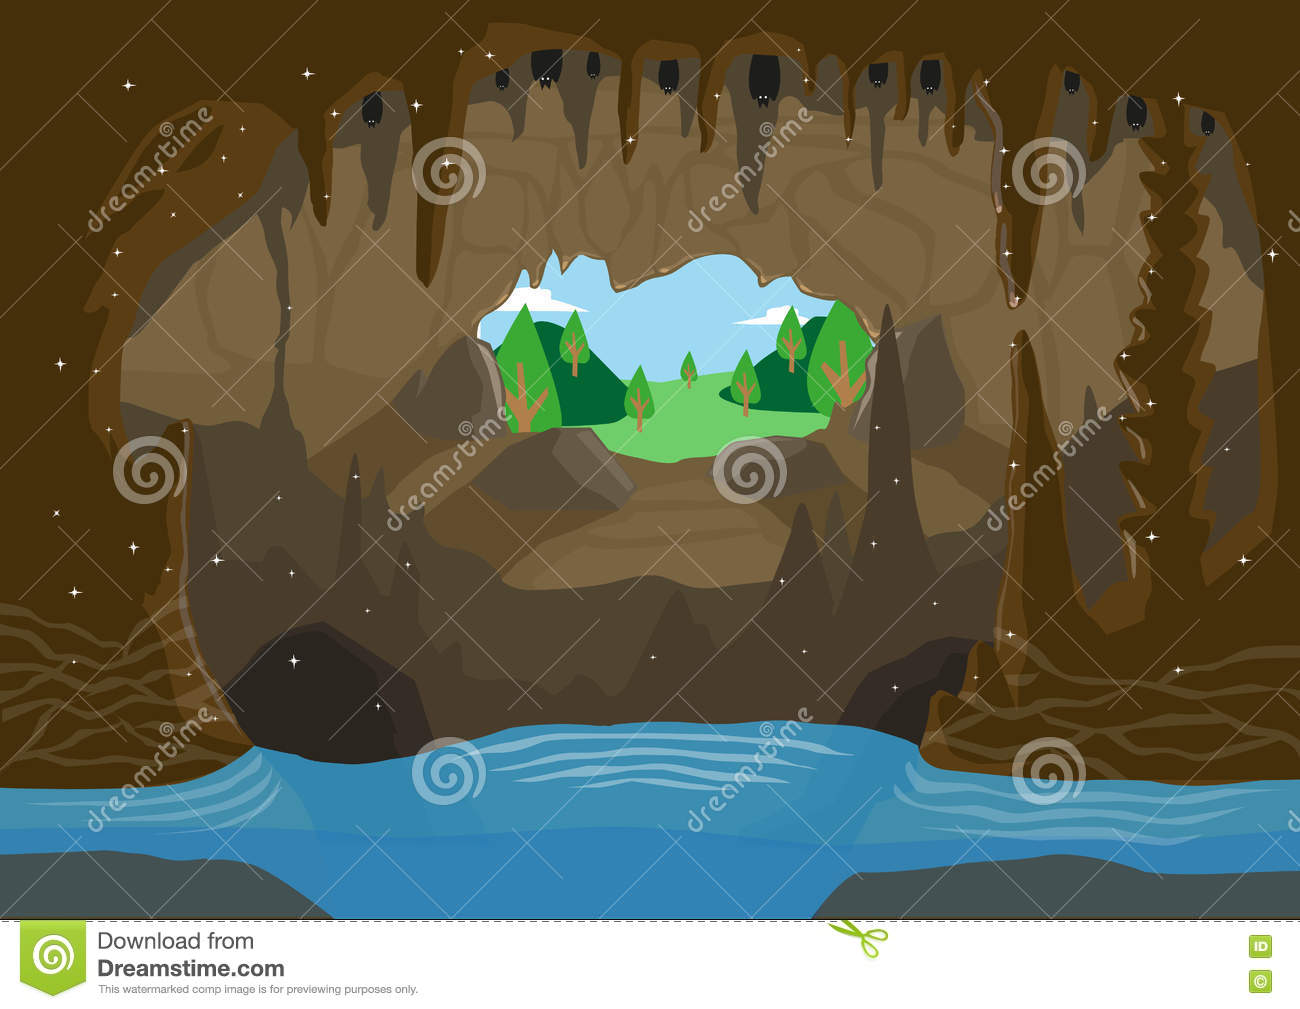 An Illustration Of A Cave With Underground River And Bats Hanging.